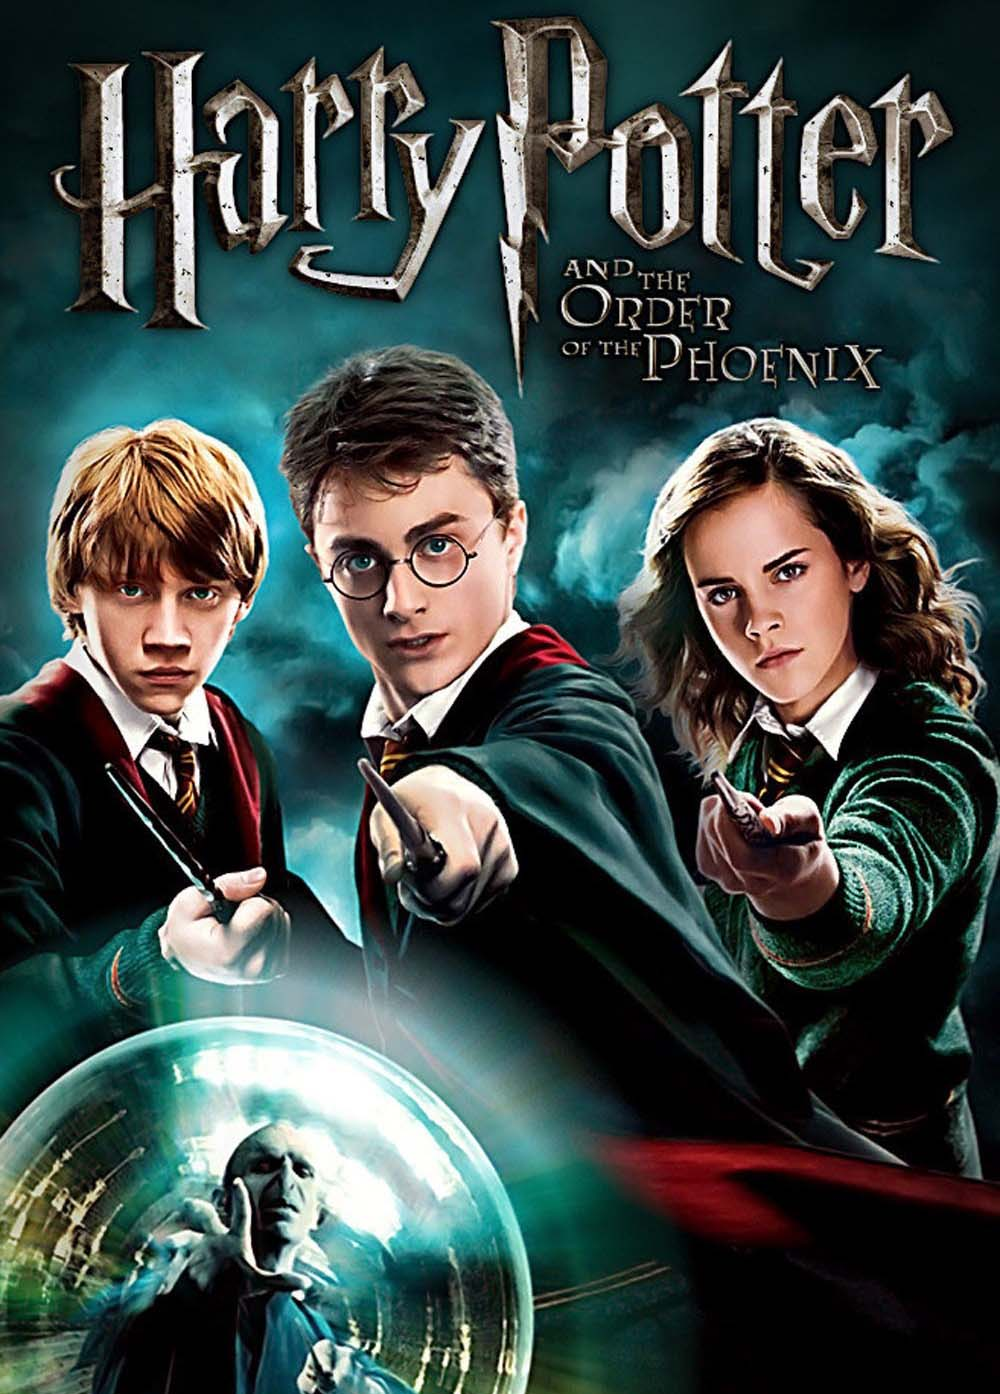 harry potter and the order of the phoenix 2007 movie free